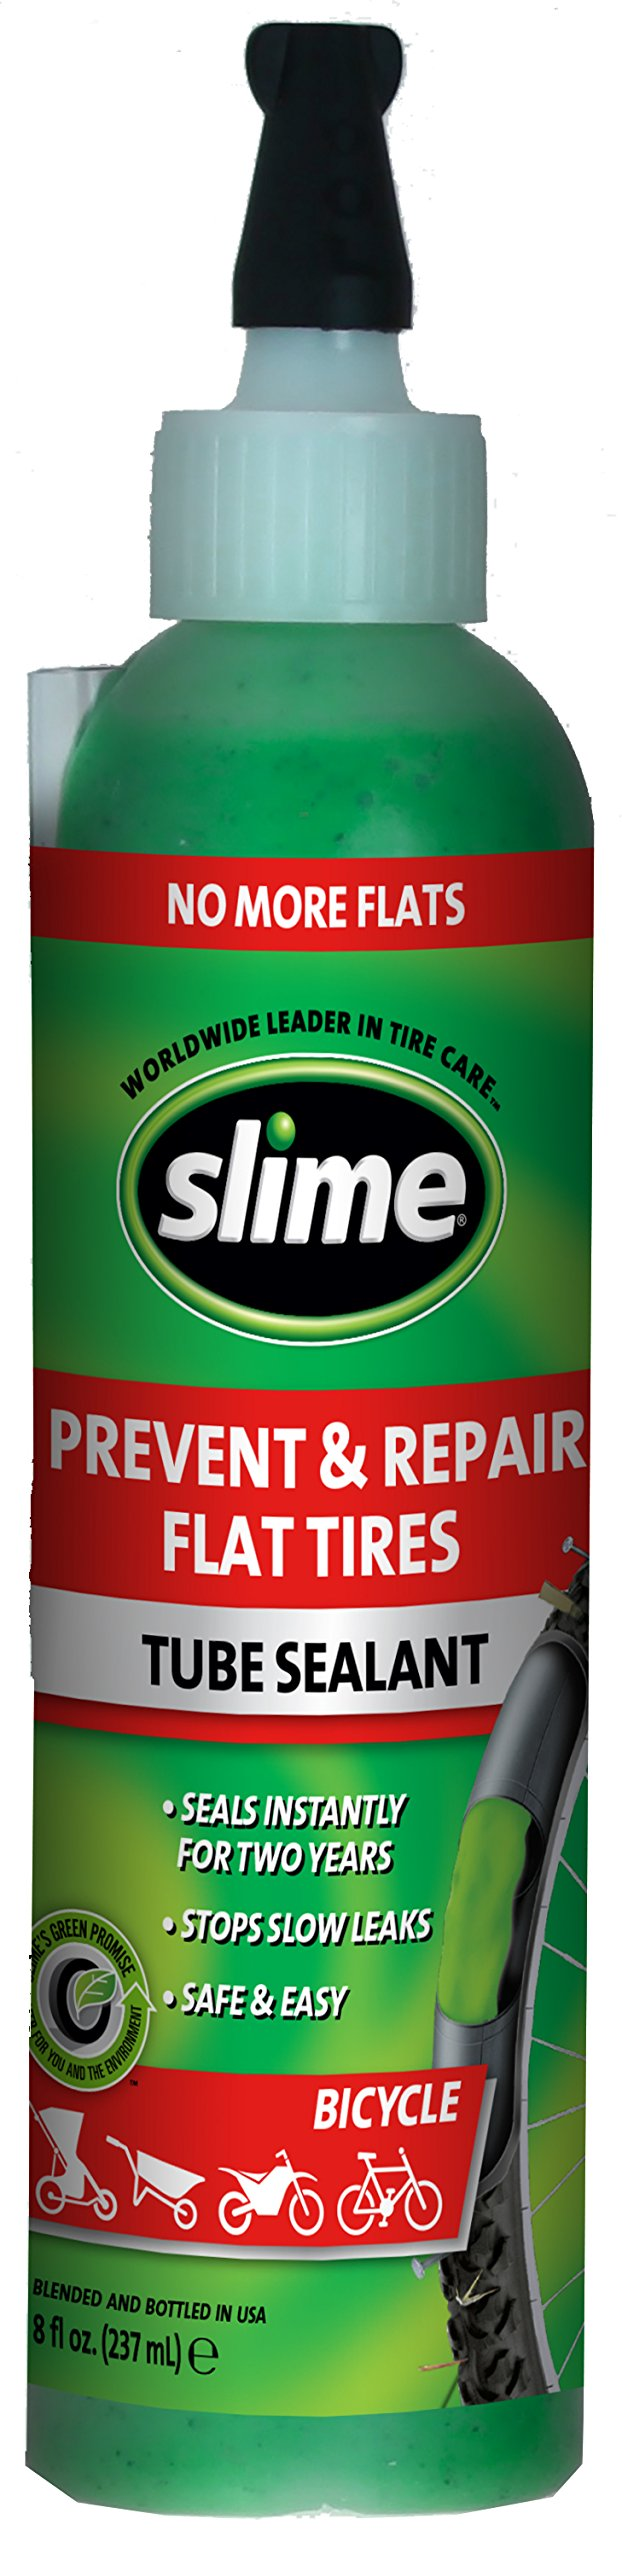 Slime 10004 Tube Sealant, 16 oz.